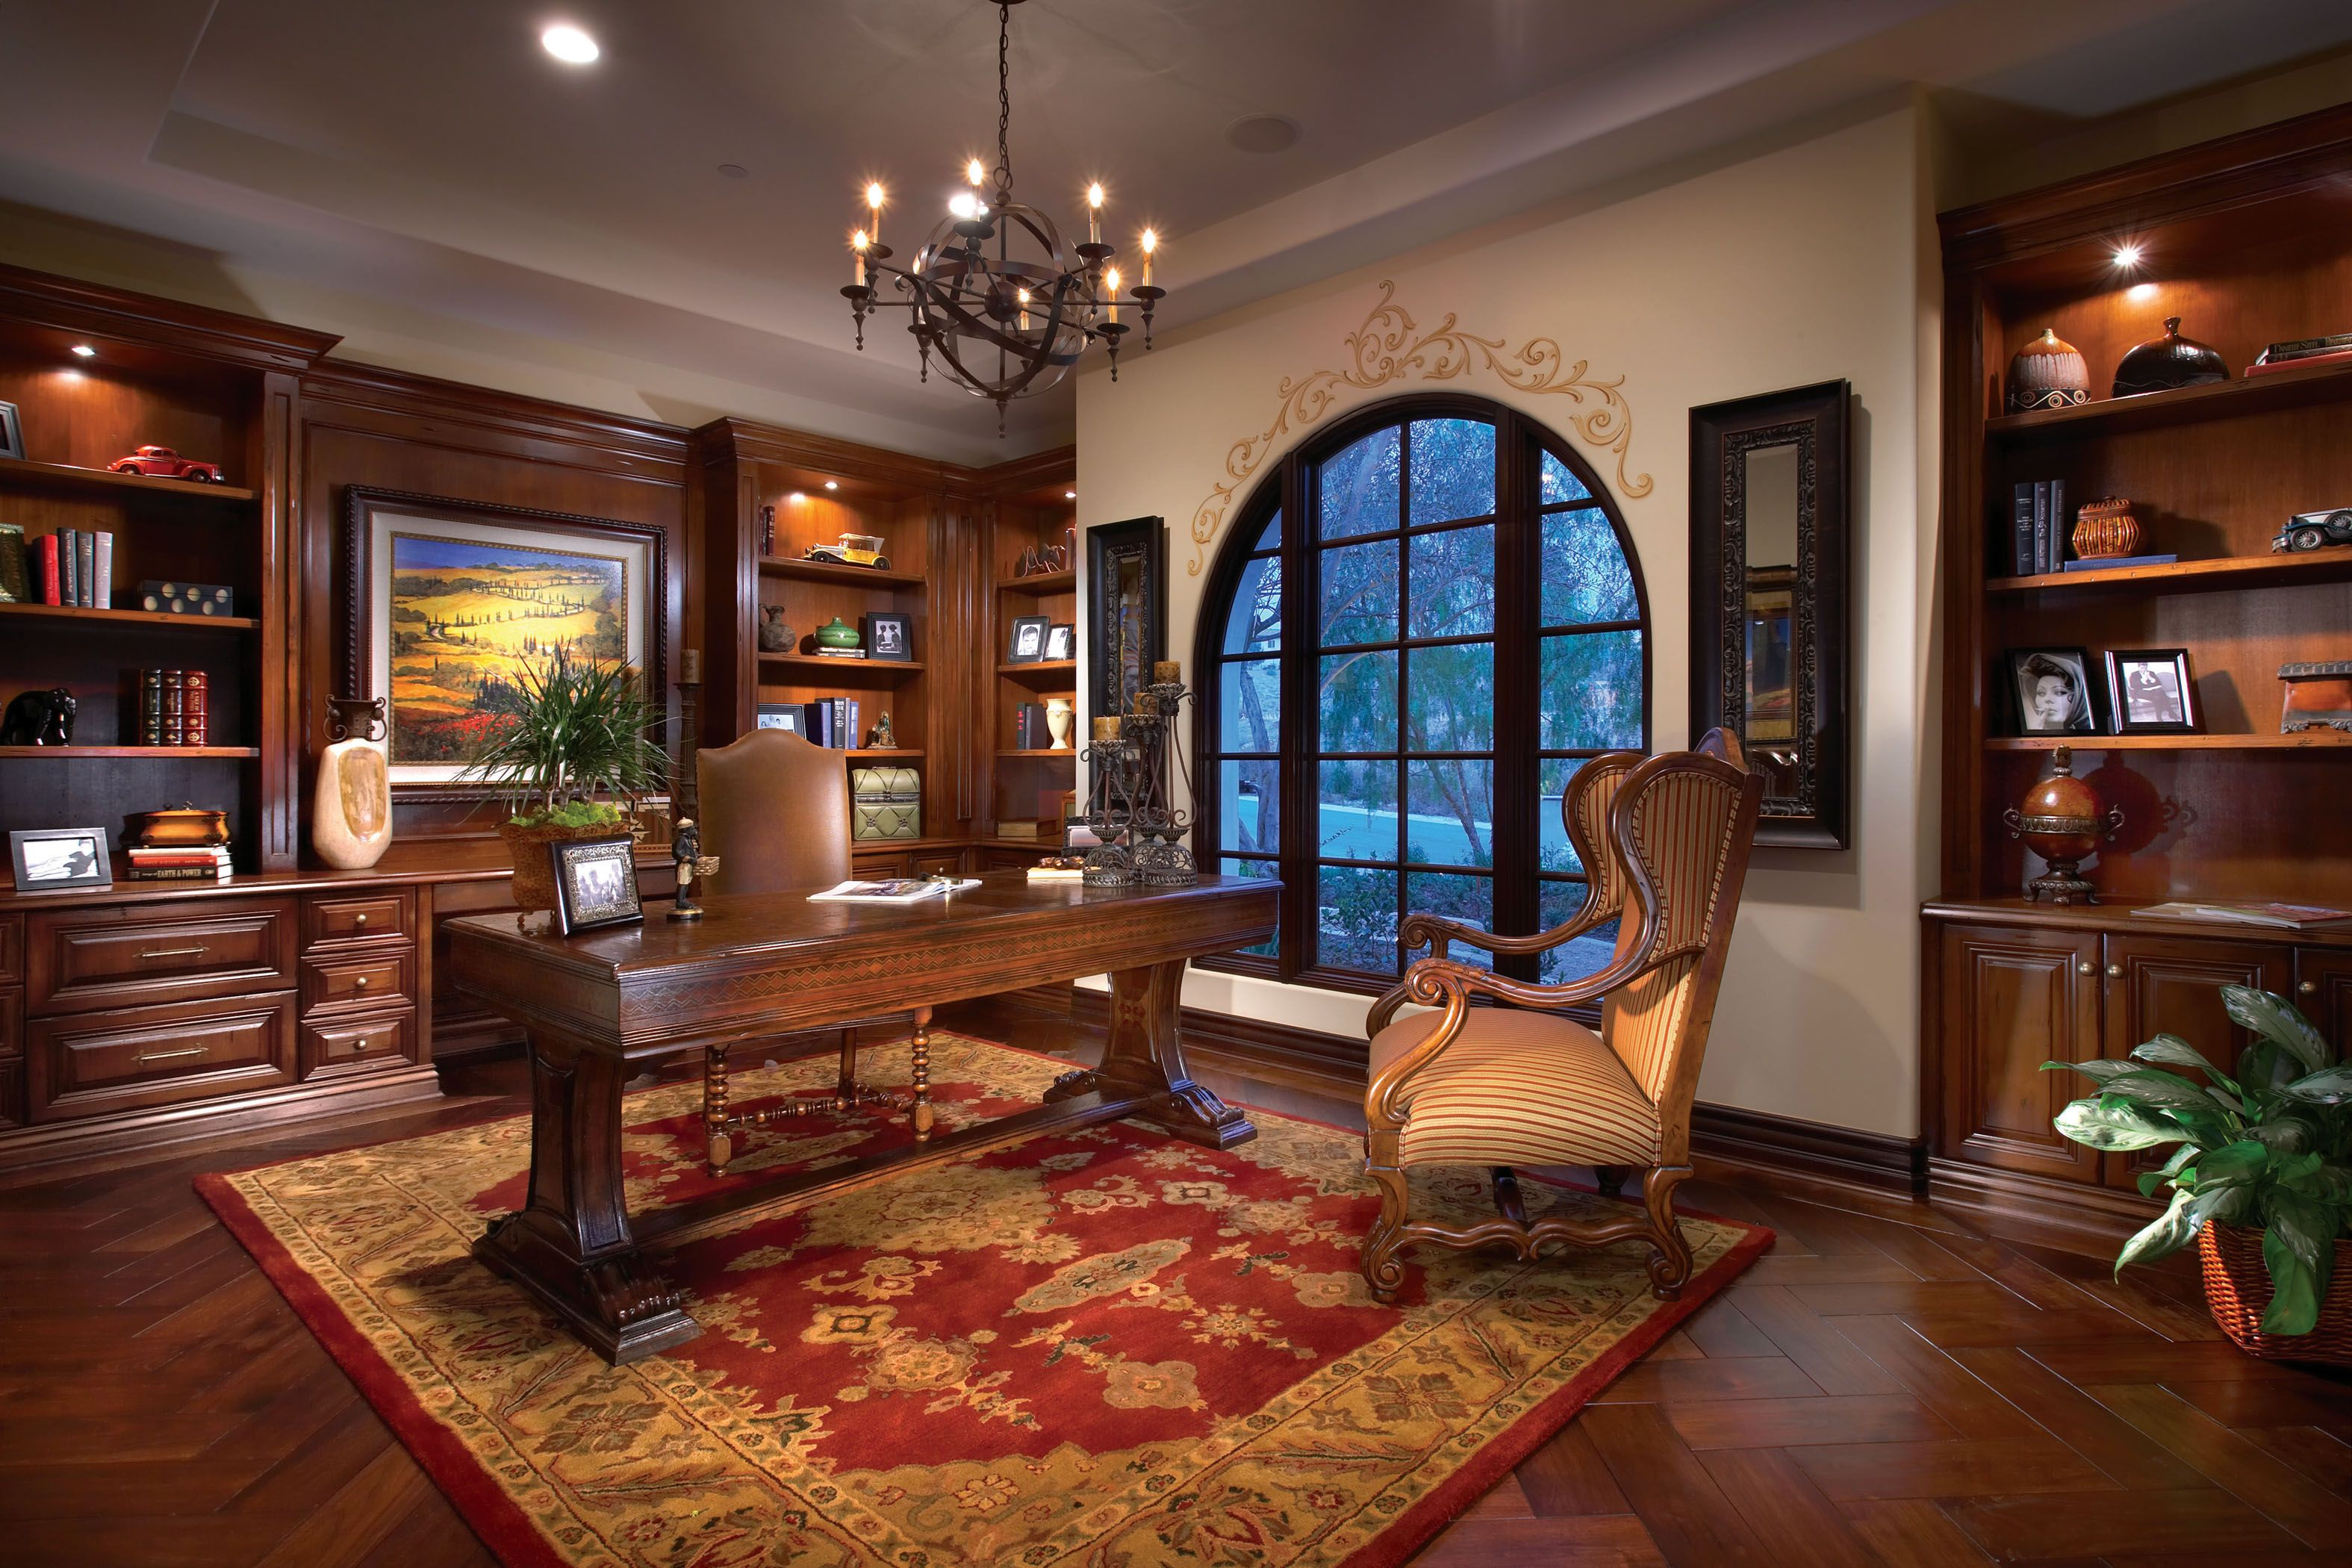 Home Office Santa Barbara Style Custom Home Sits On An Approximate 28 000 Sf Lot Residence Boasts 6 000 Sf Of Living Space Home House Interior Living Spaces